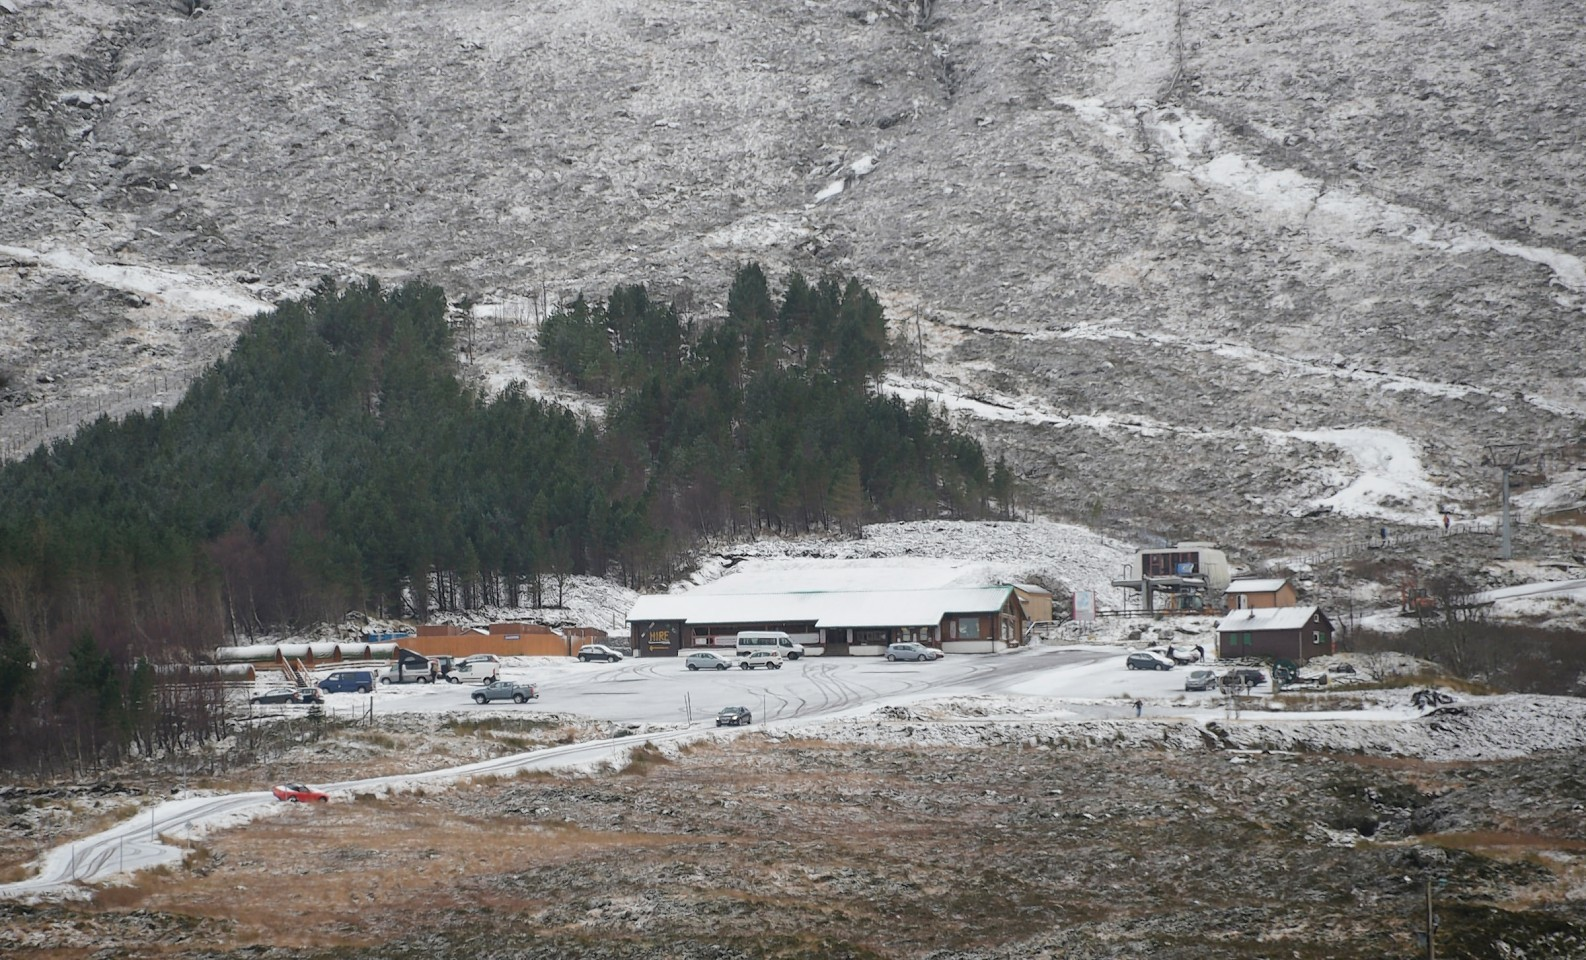 The snowbringers festival provided instant results at Glencoe